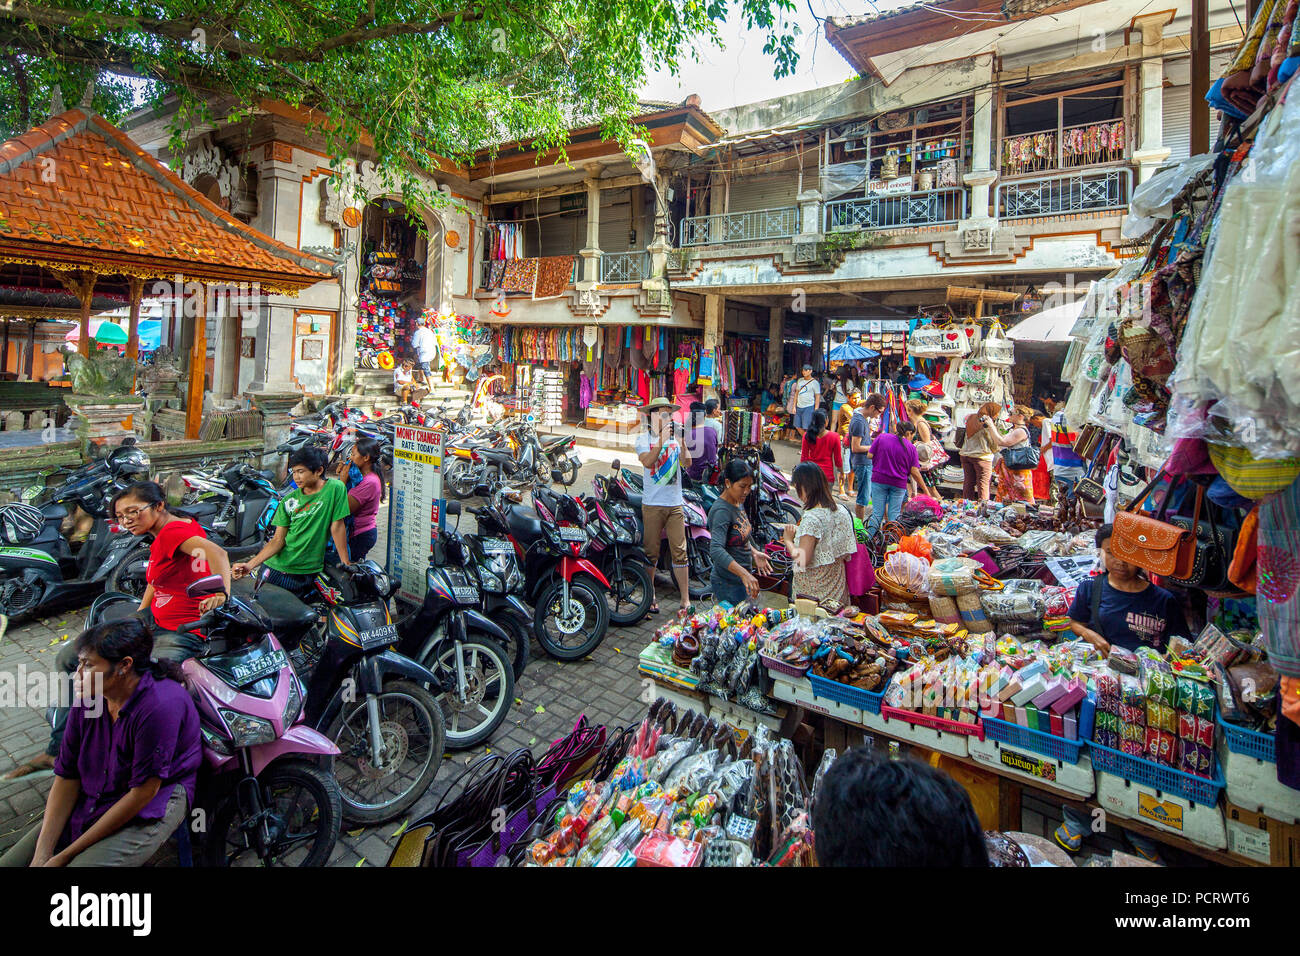 Weekly farmers' market in Ubud with tourists and visitors, market day, street scene, market, Ubud, Bali, Indonesia, Asia - Stock Image